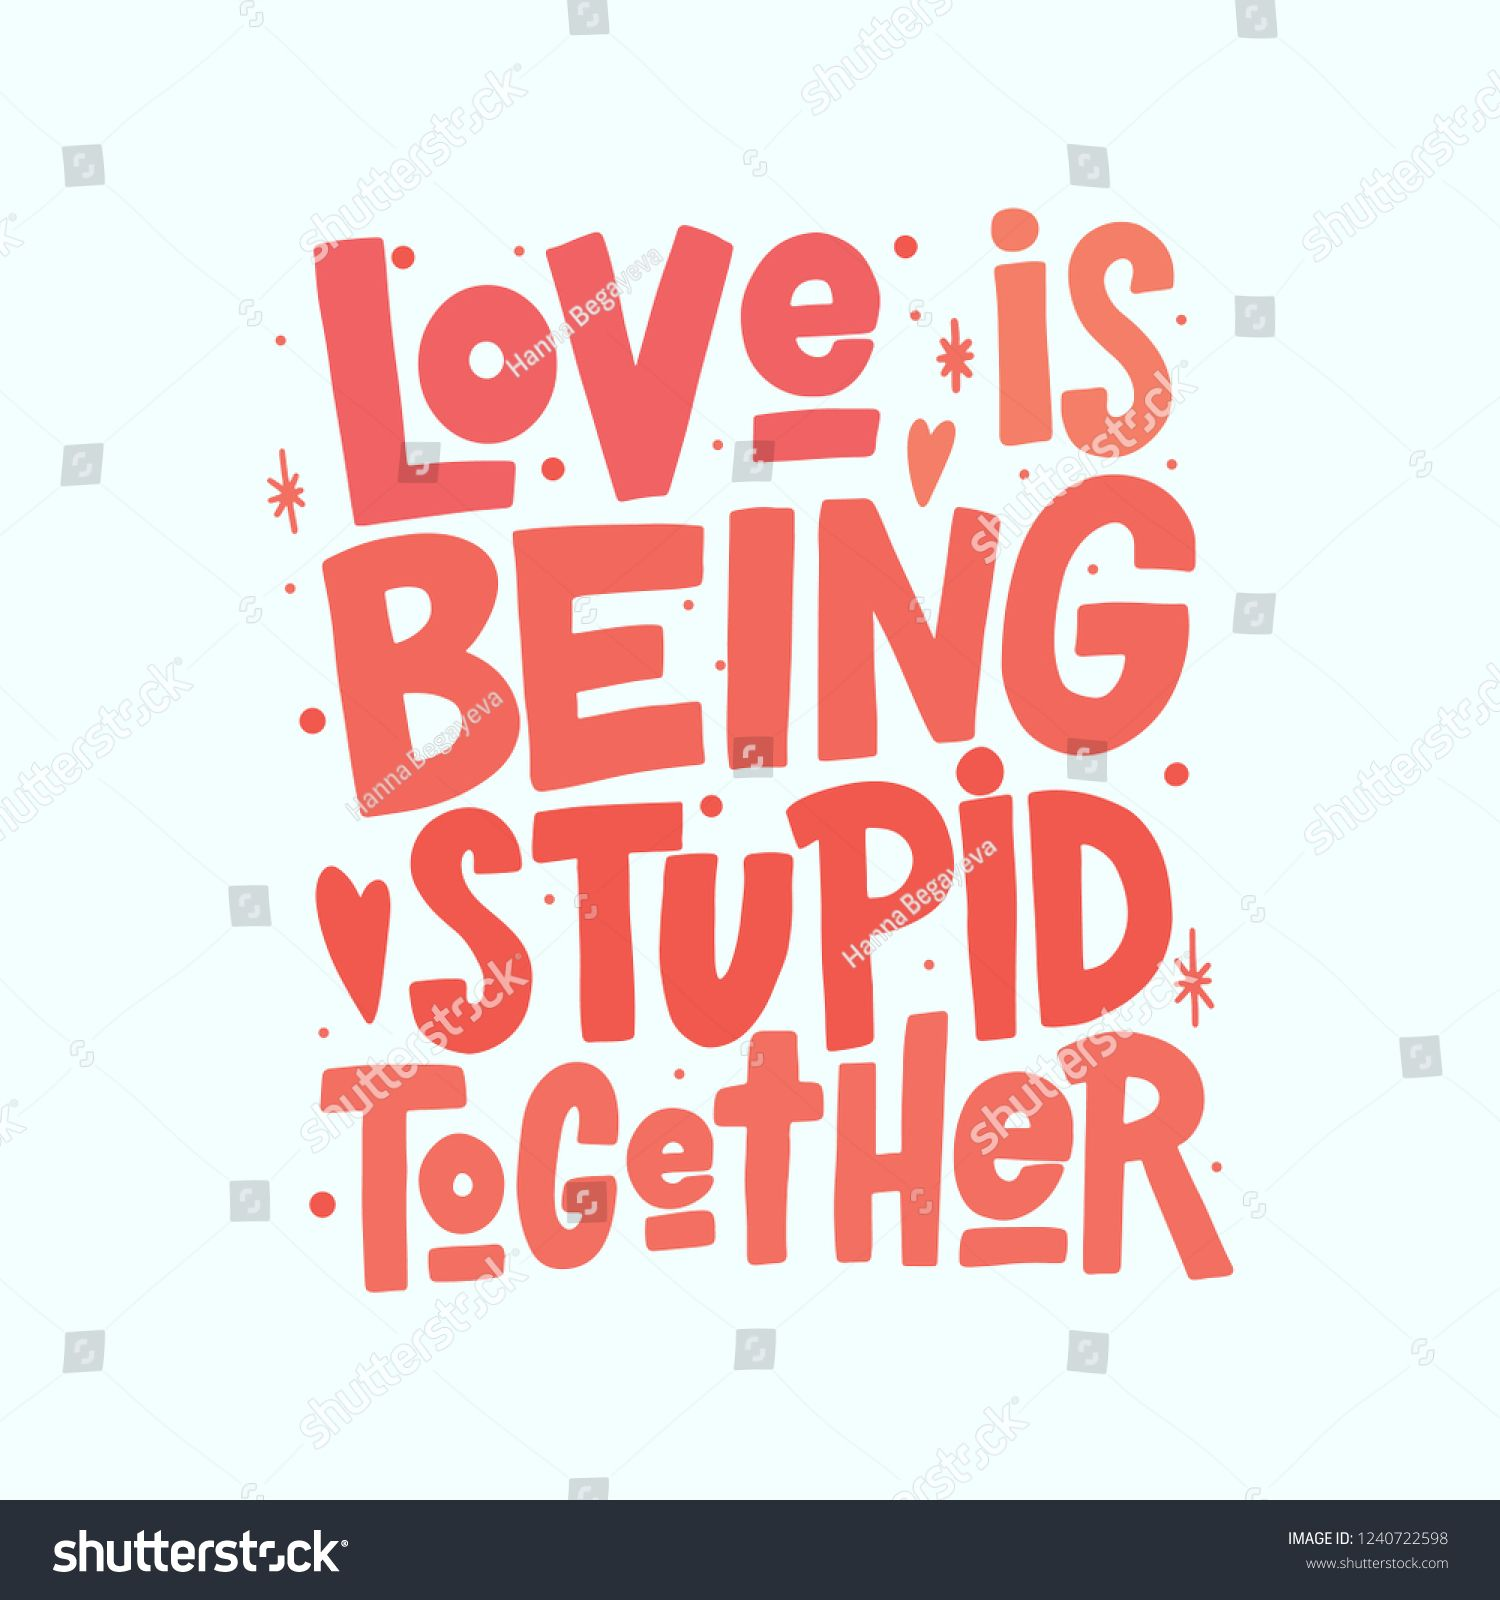 Download Love is being stupid together vector lettering isolated on ...